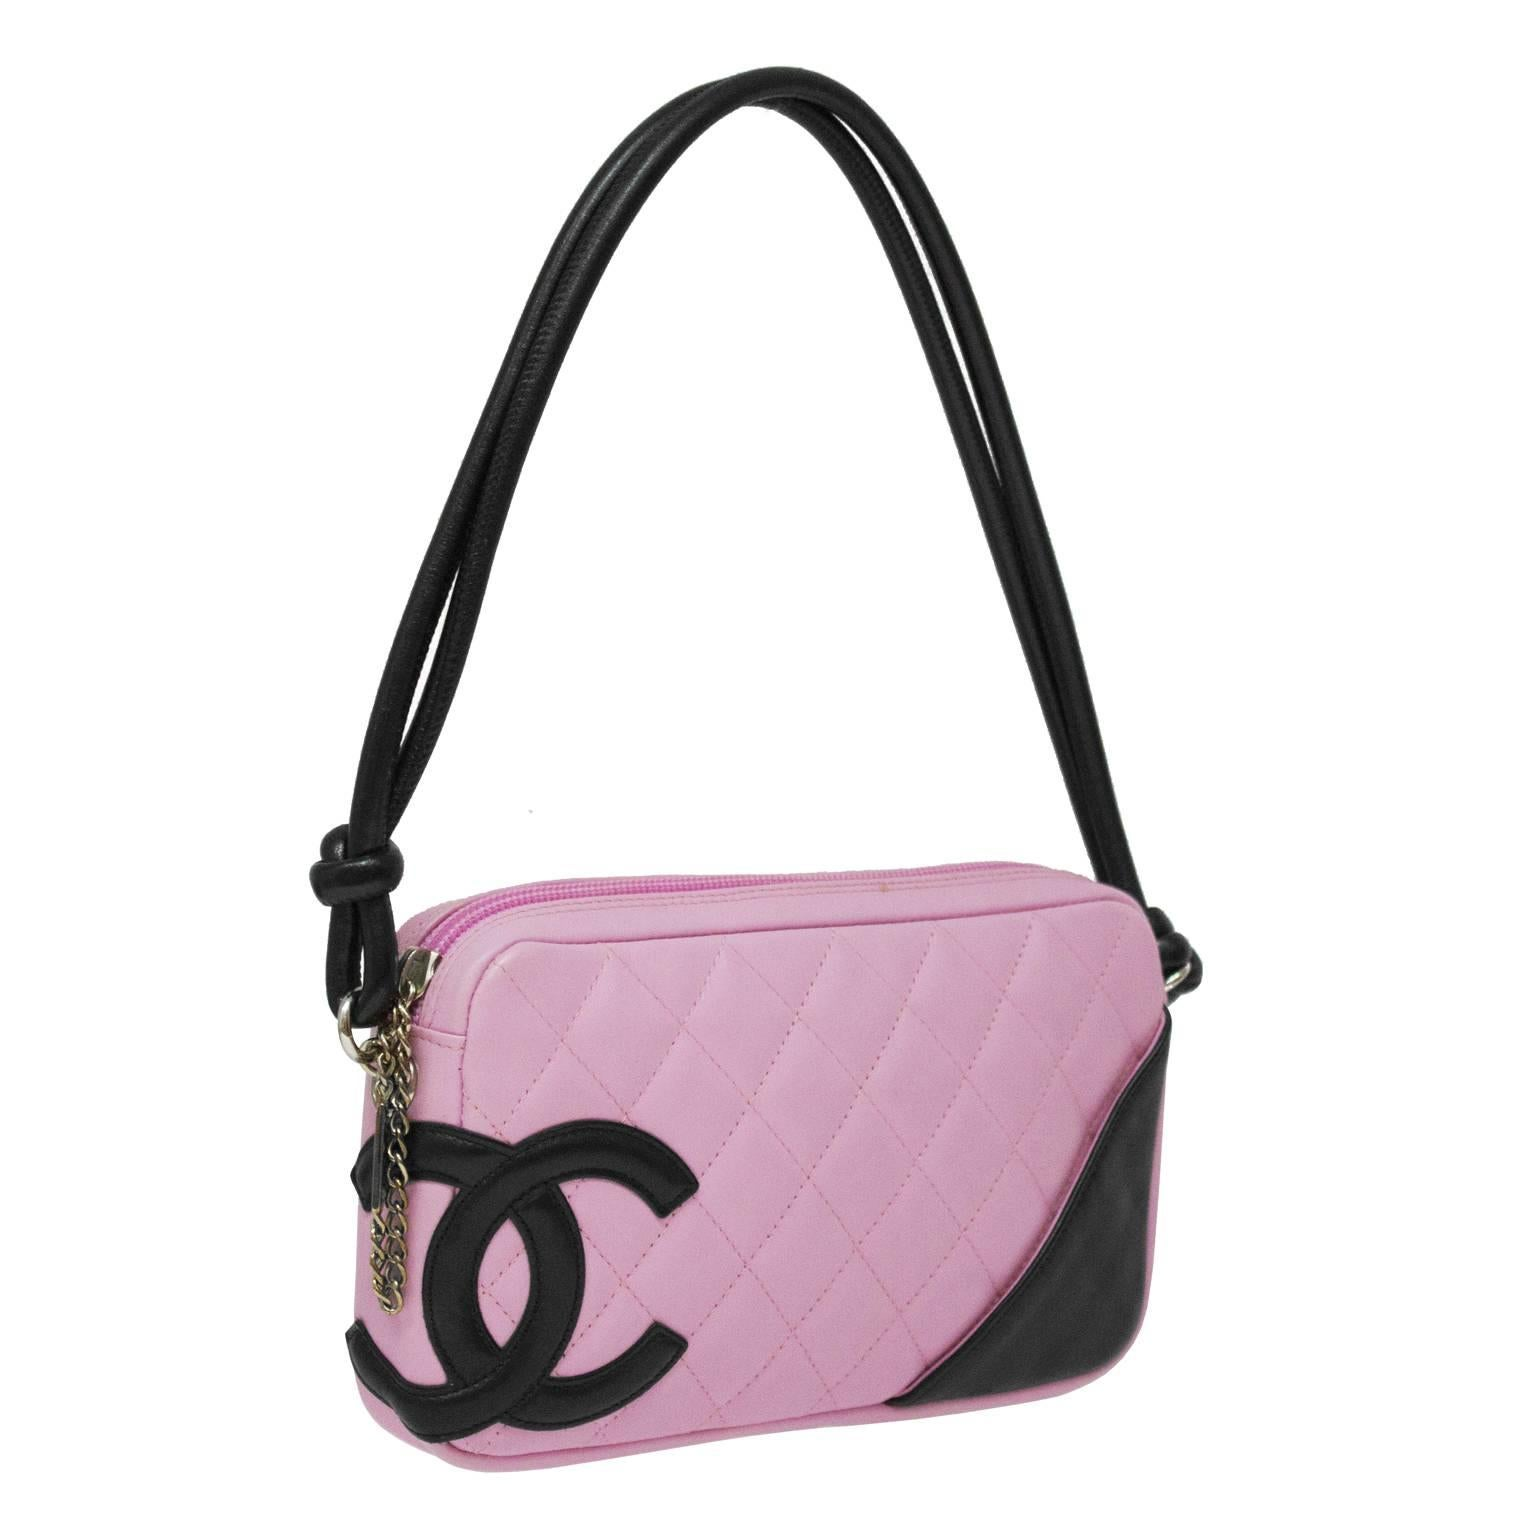 910fd345531f 2004 Chanel Pink Ligne Cambon Quilted Pochette Bag at 1stdibs